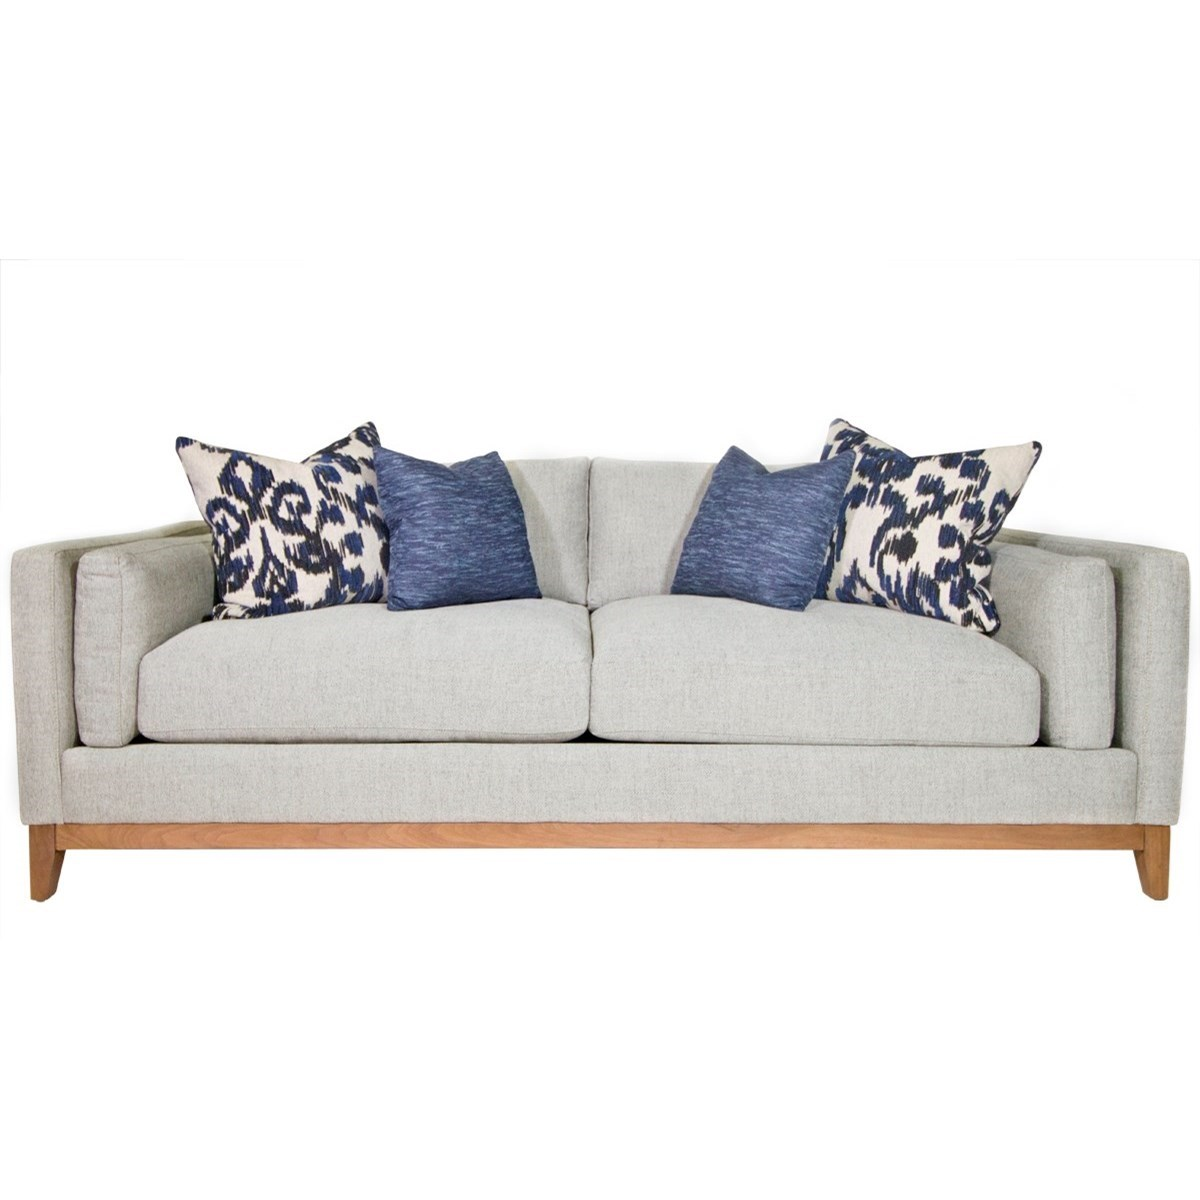 Jonathan Louis Kelsey Sofa - Item Number: 34770-Deauville Stone